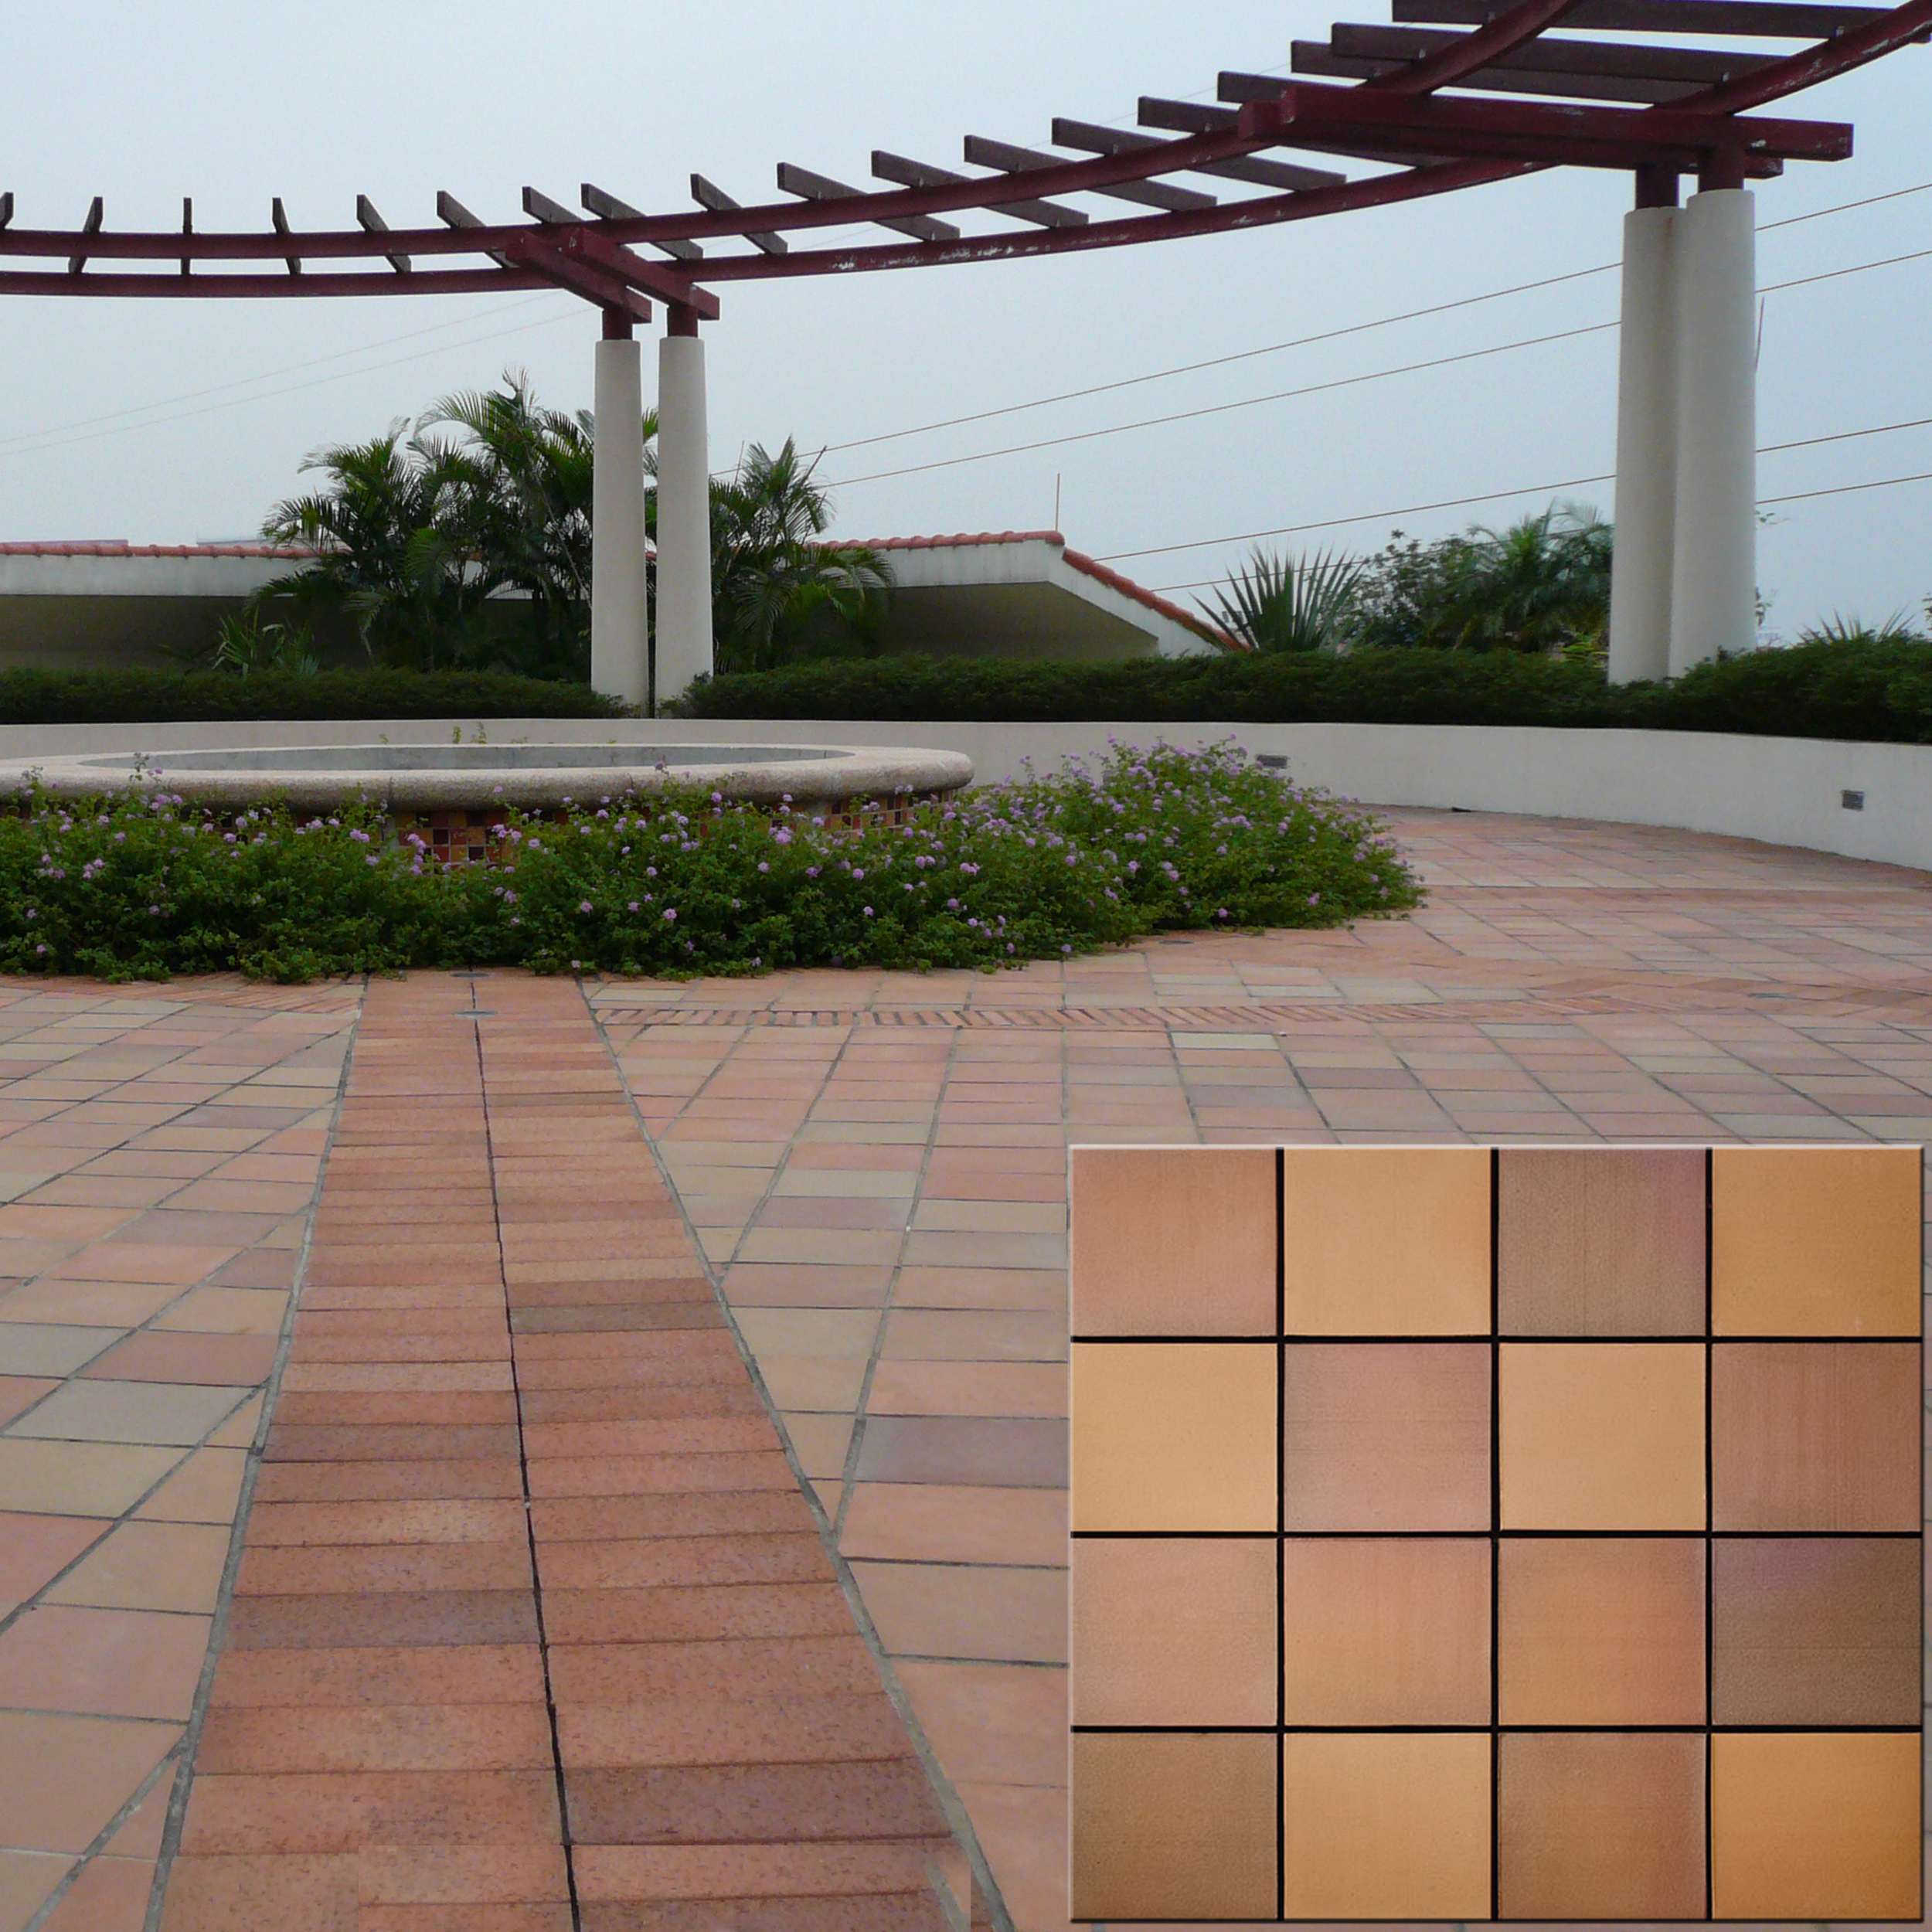 red quarry supplier decorative outdoor terracotta floor tiles 150x150 buy terracotta tiles floor tiles 150x150 outdoor floor tiles product on